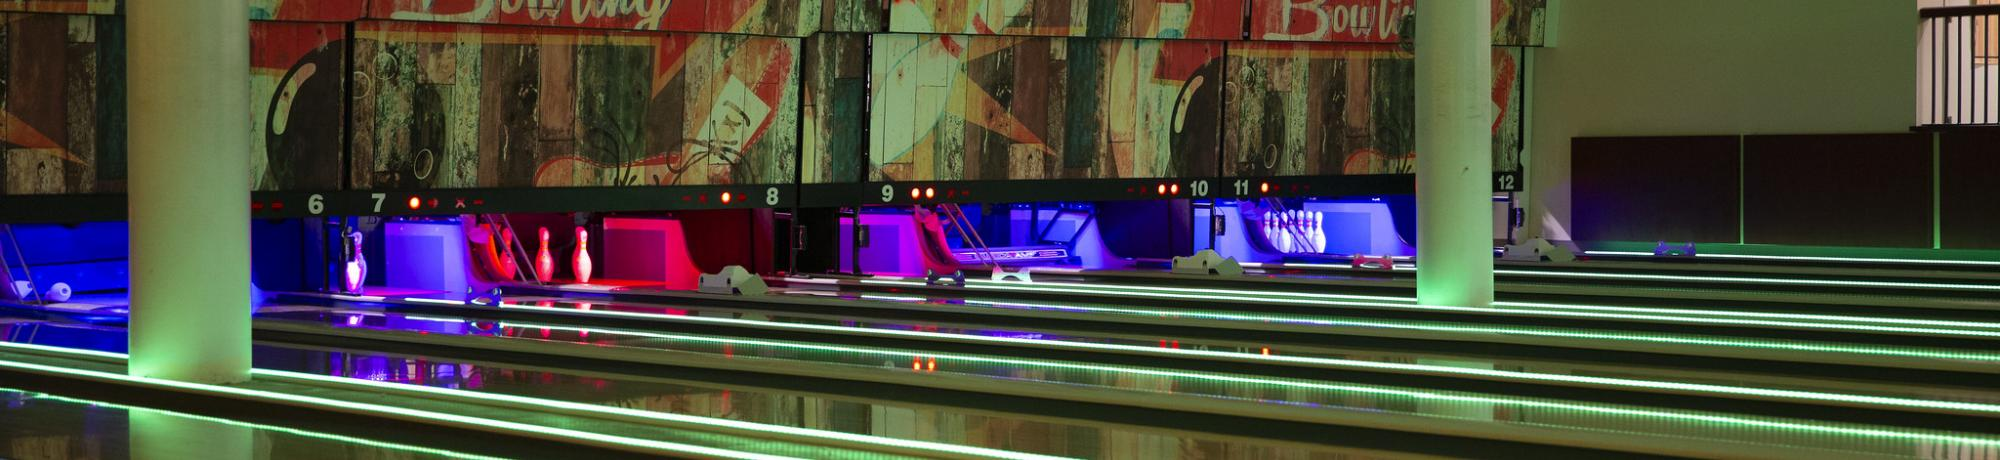 the games area bowling alley lanes with colorful led lights